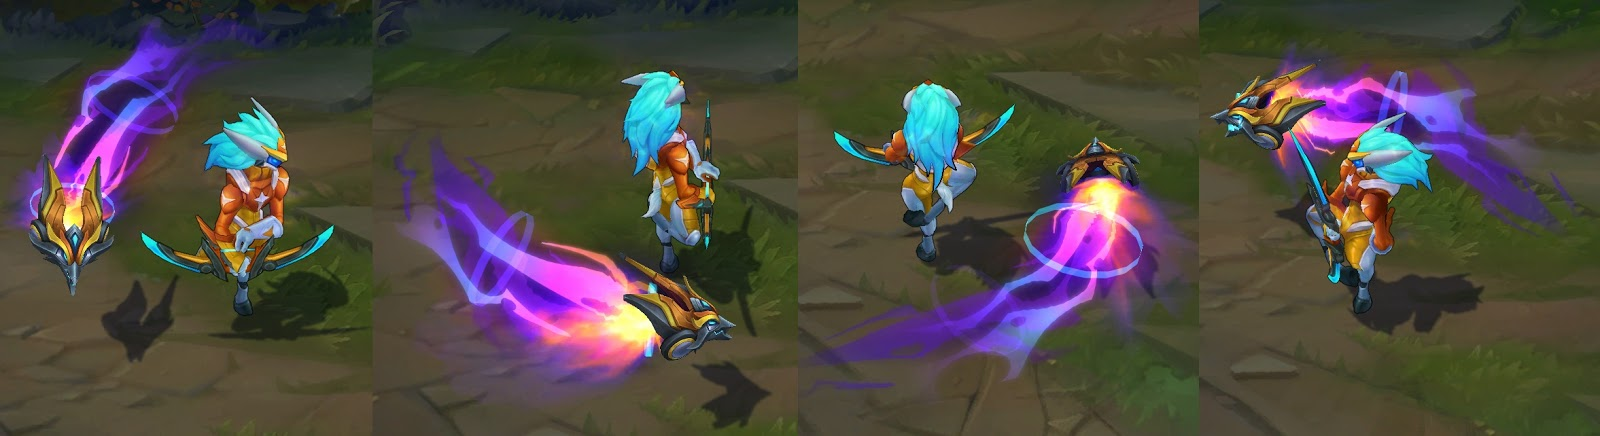 Super Galaxy Kindred skin